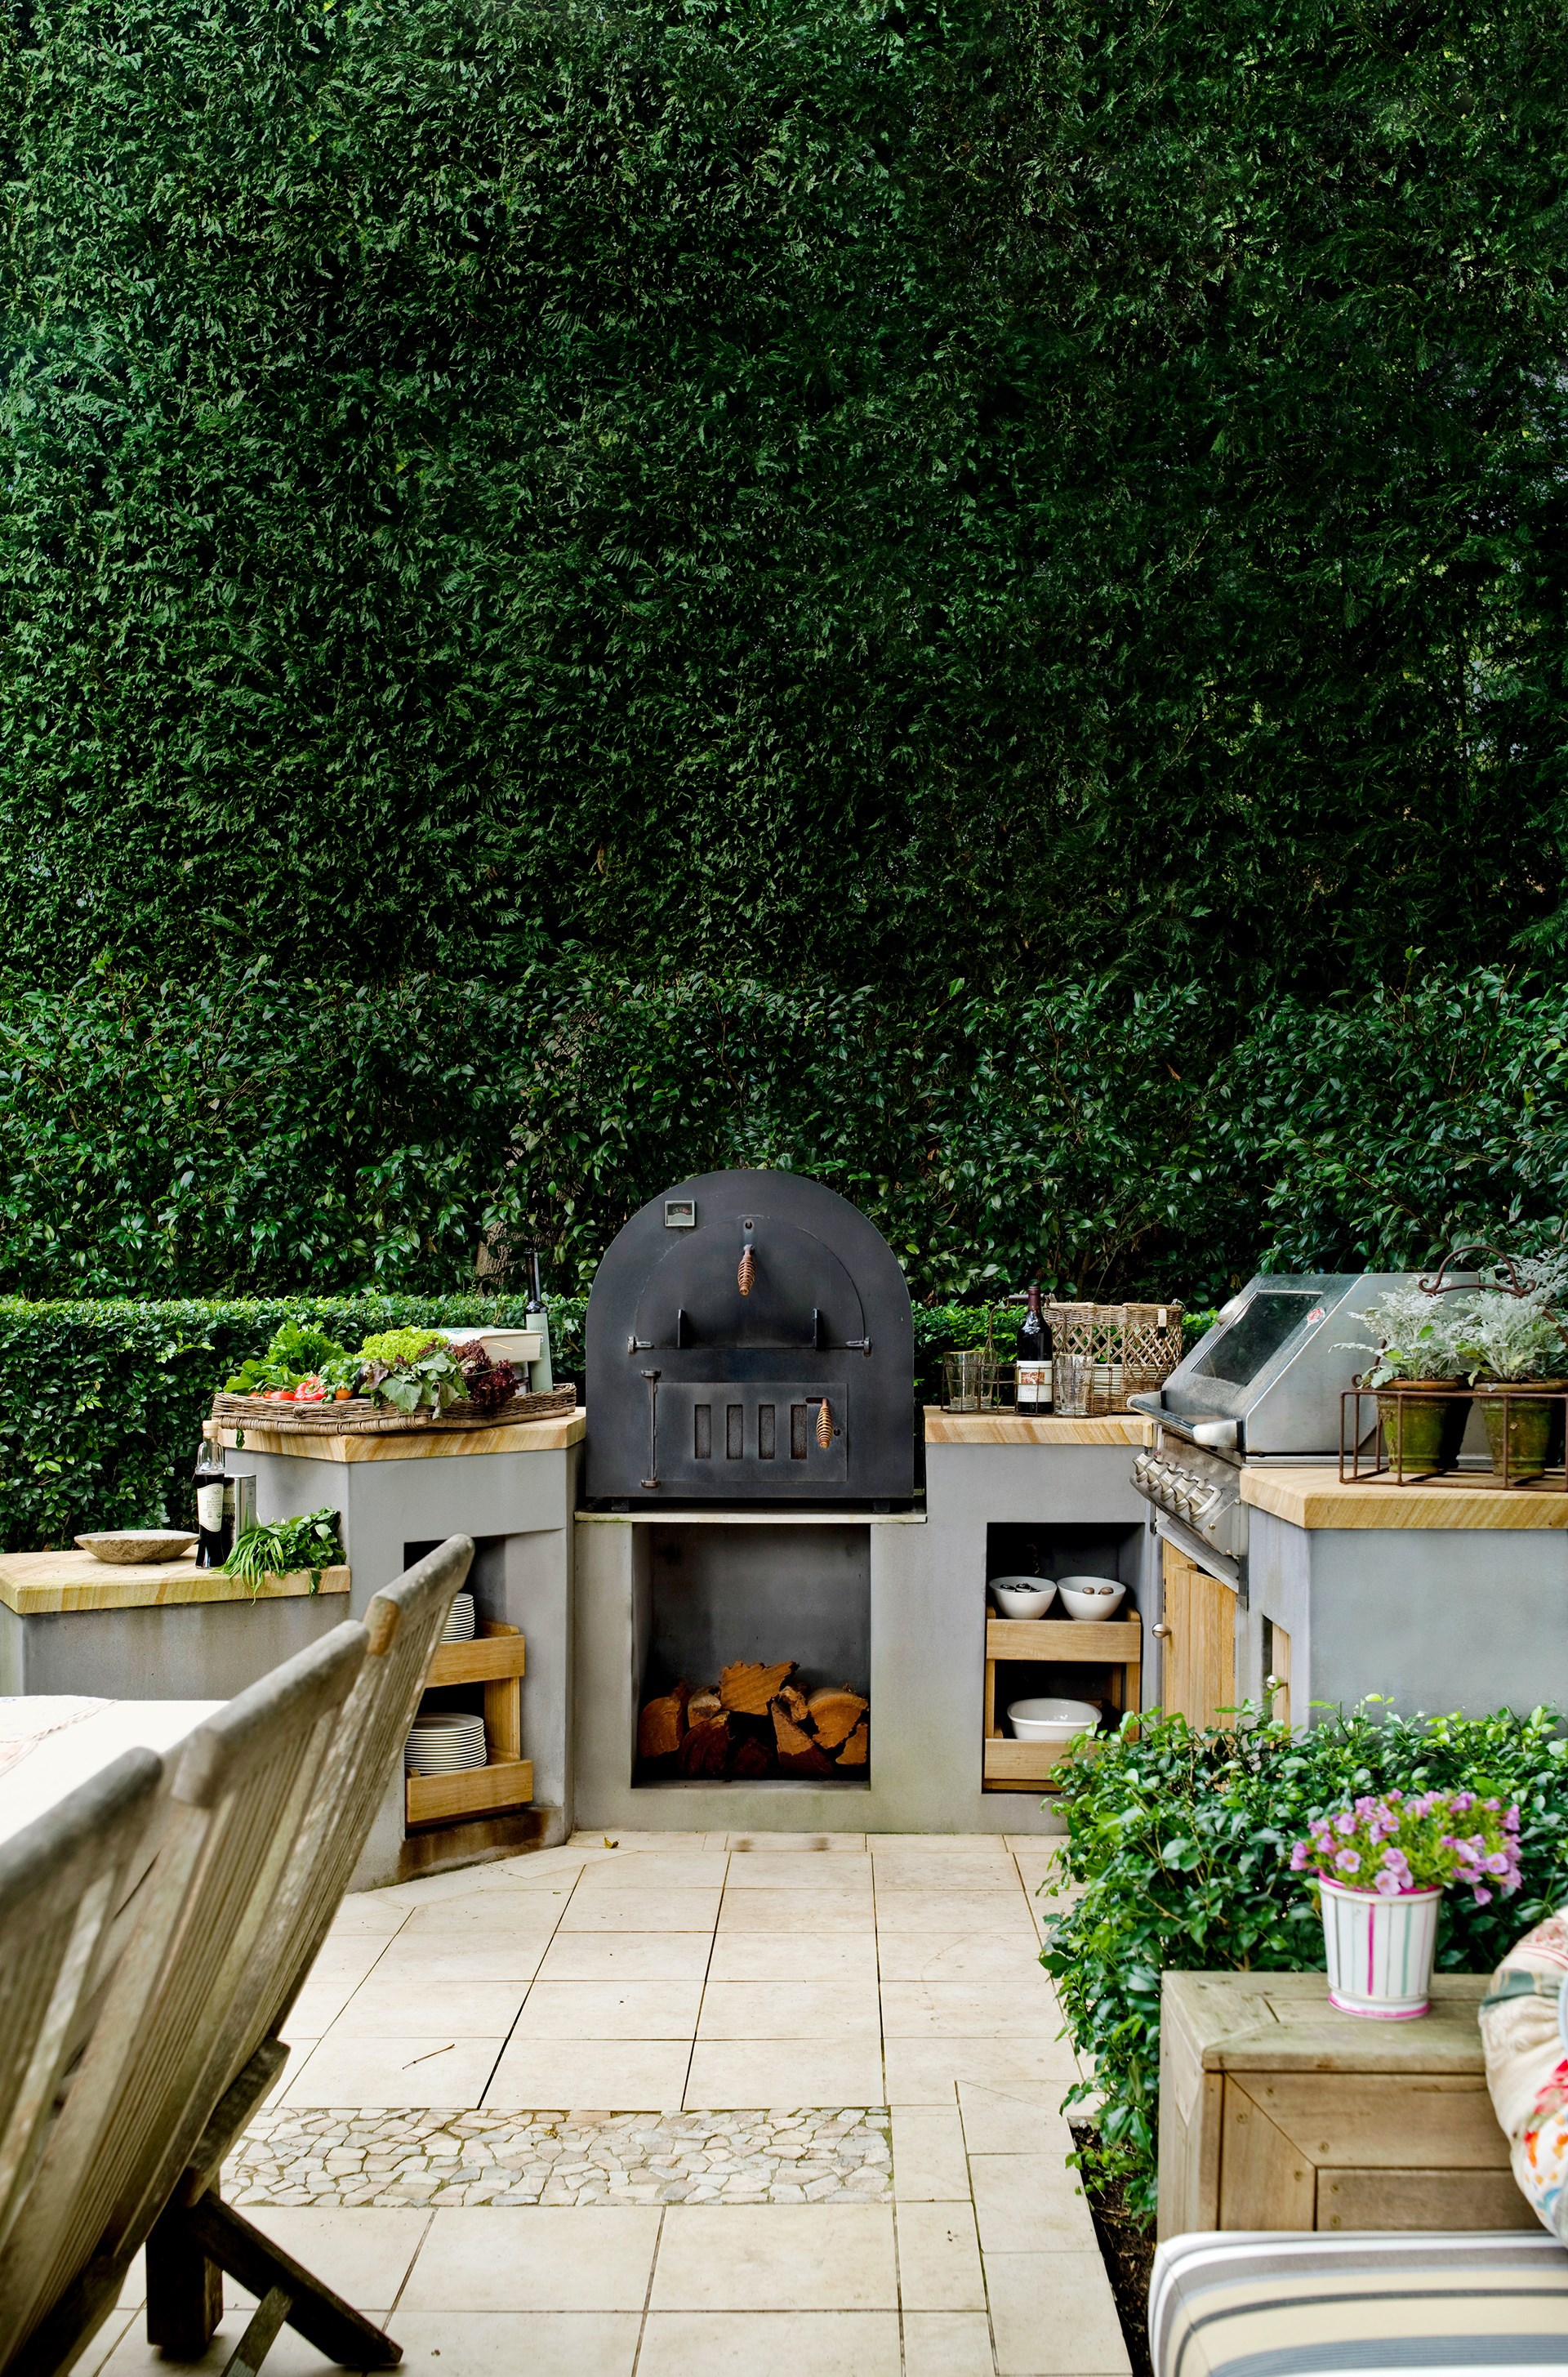 """Give your barbecue some [tender love and care](http://www.homestolove.com.au/how-to-care-for-your-barbecue-1897/?utm_campaign=supplier/ target=""""_blank"""") to ensure it lasts for many years to come. Photo: Scott Hawkins / *Australian House & Garden*"""